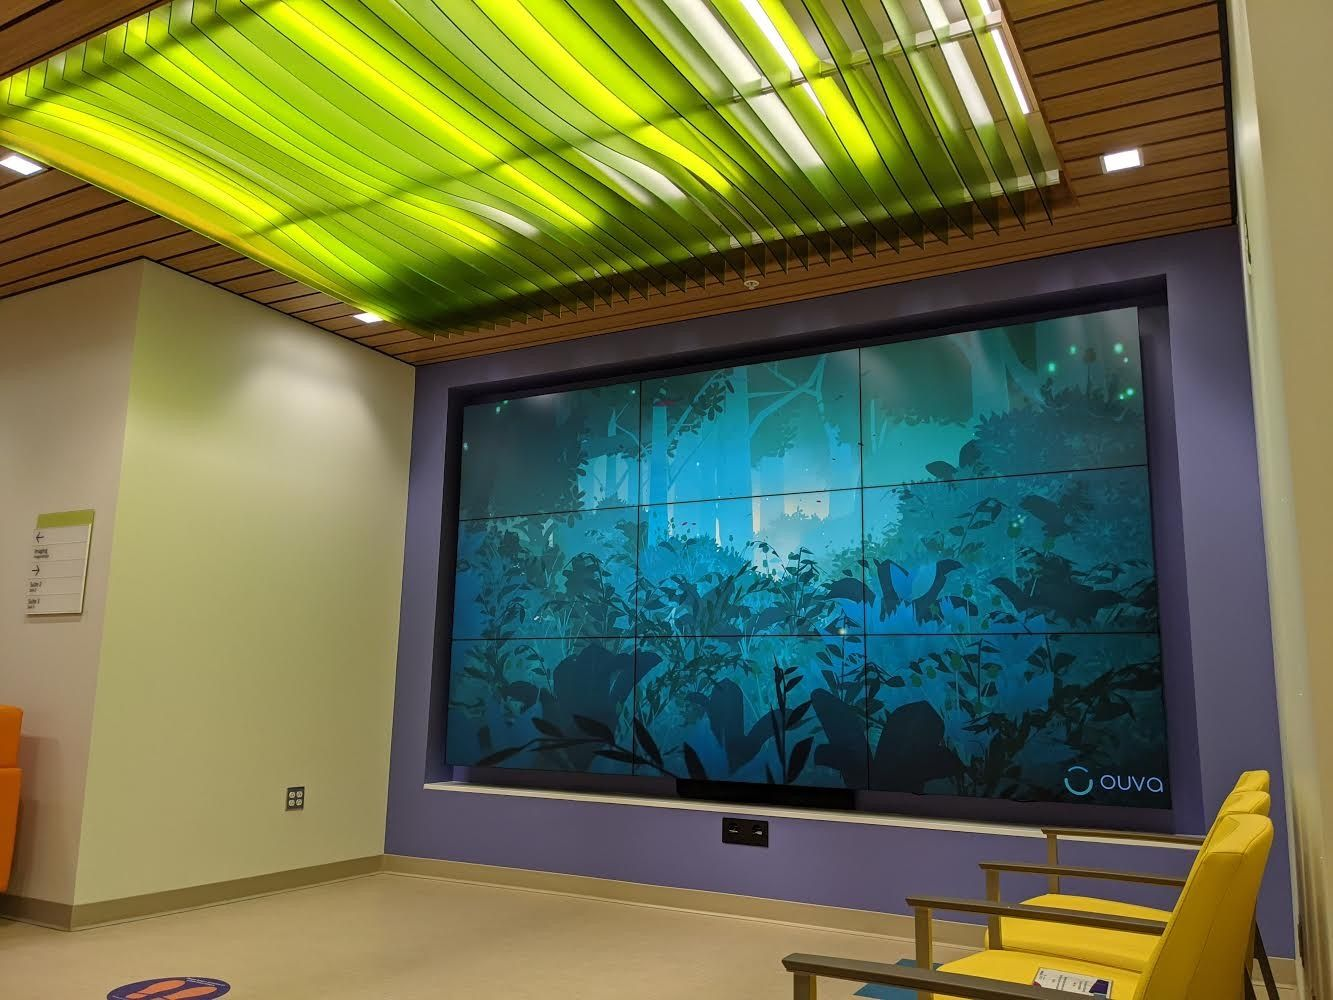 Interactive video wall at Miller Children's Hospital showing a lush nature scene